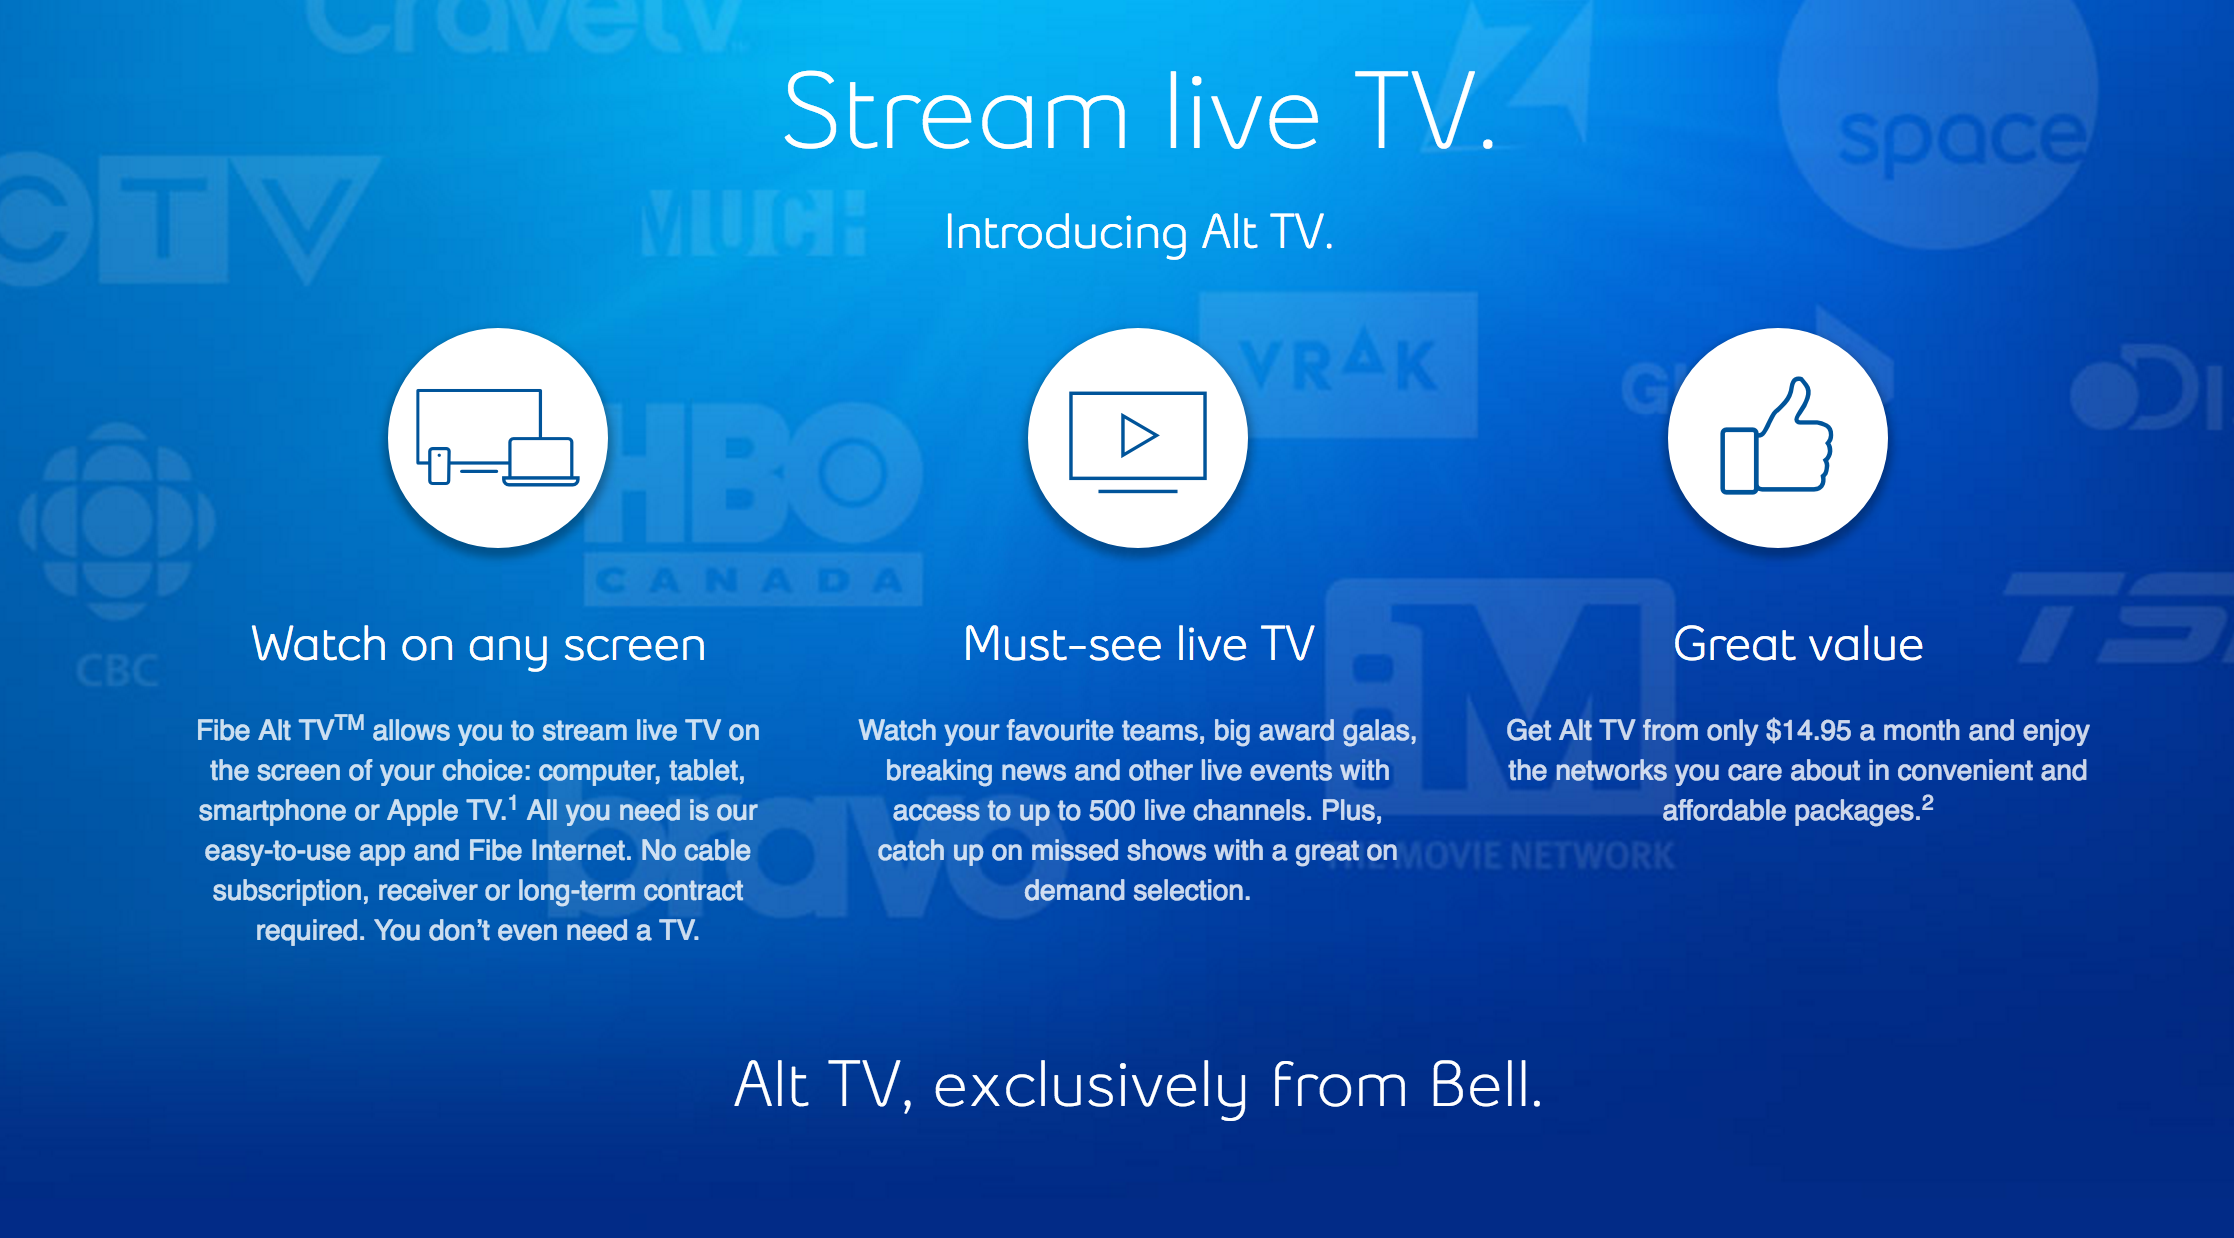 Live TV for the cord-cutter | Meghan Yuri Young